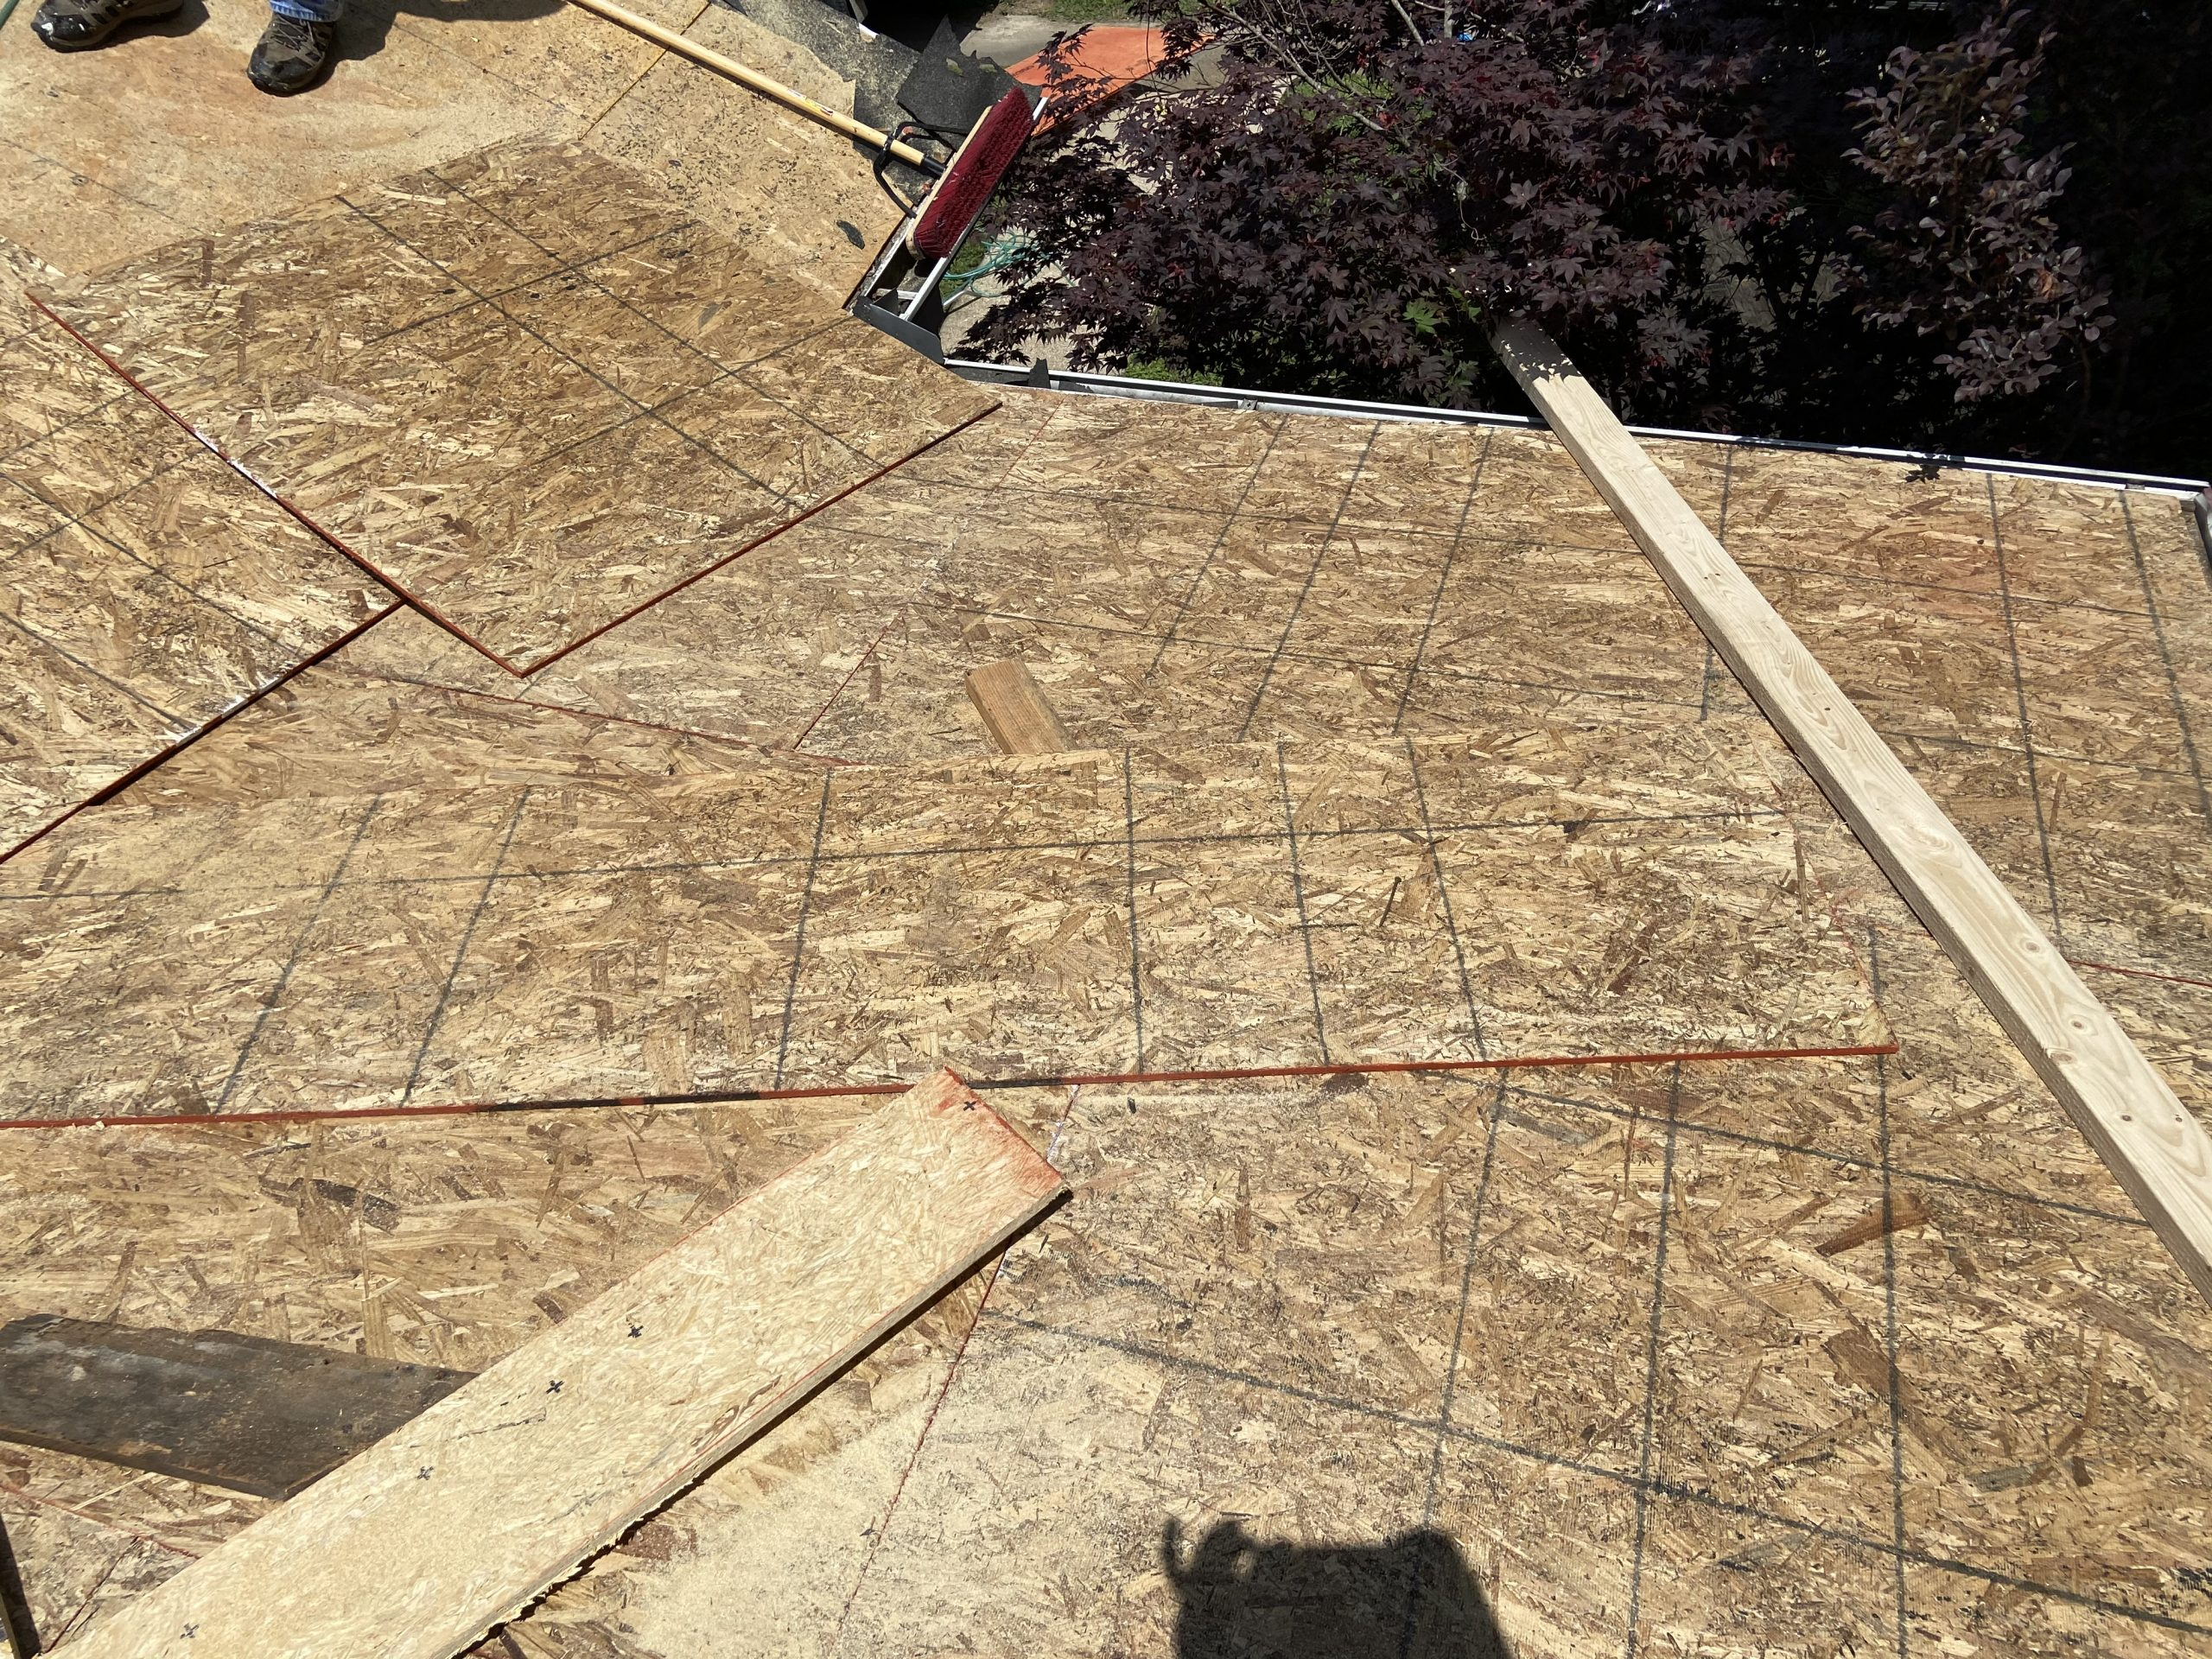 this is a picture of the deck boards that are getting installed on this roof